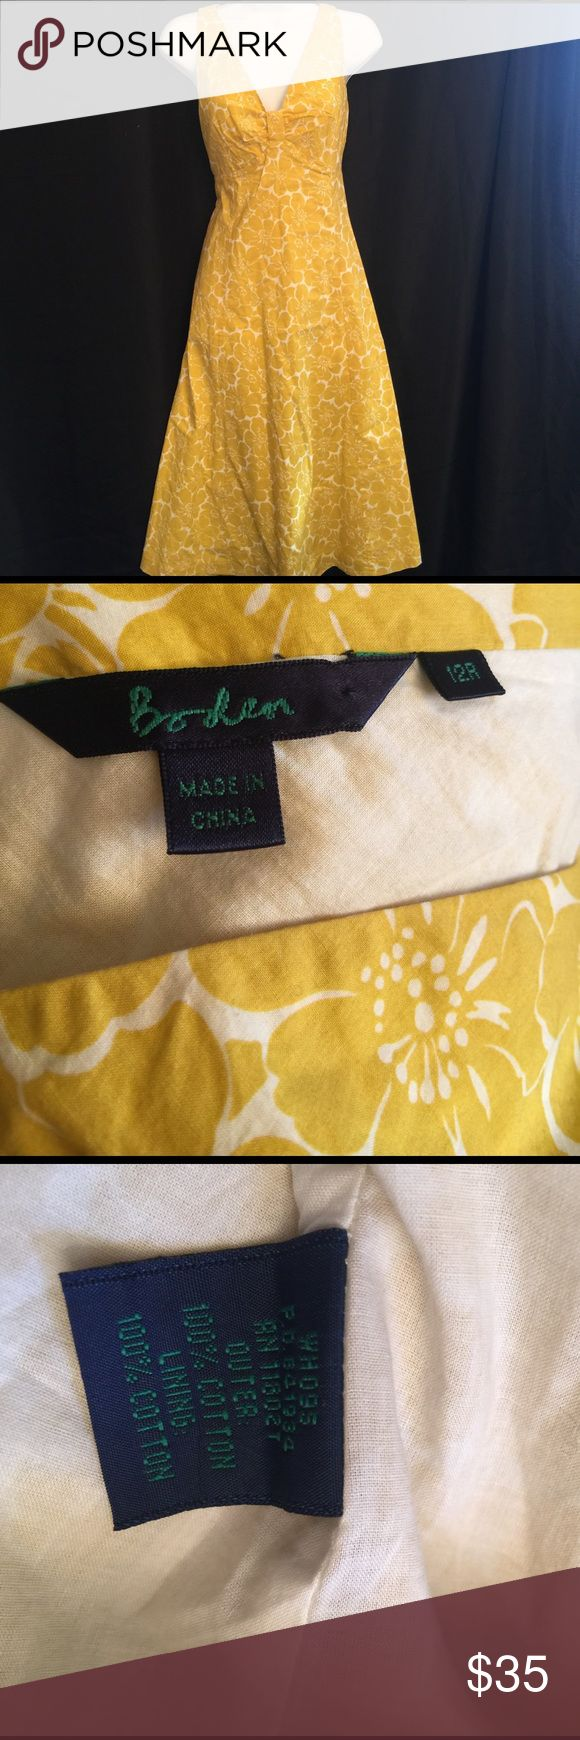 Boden  SZ UK12/US8 White and Yellow Flower Dress Excellent Condition Boden White and Yellow Summer Dress Sz 12R the tag is a UK sz which would be a US sz 8. Boden Dresses